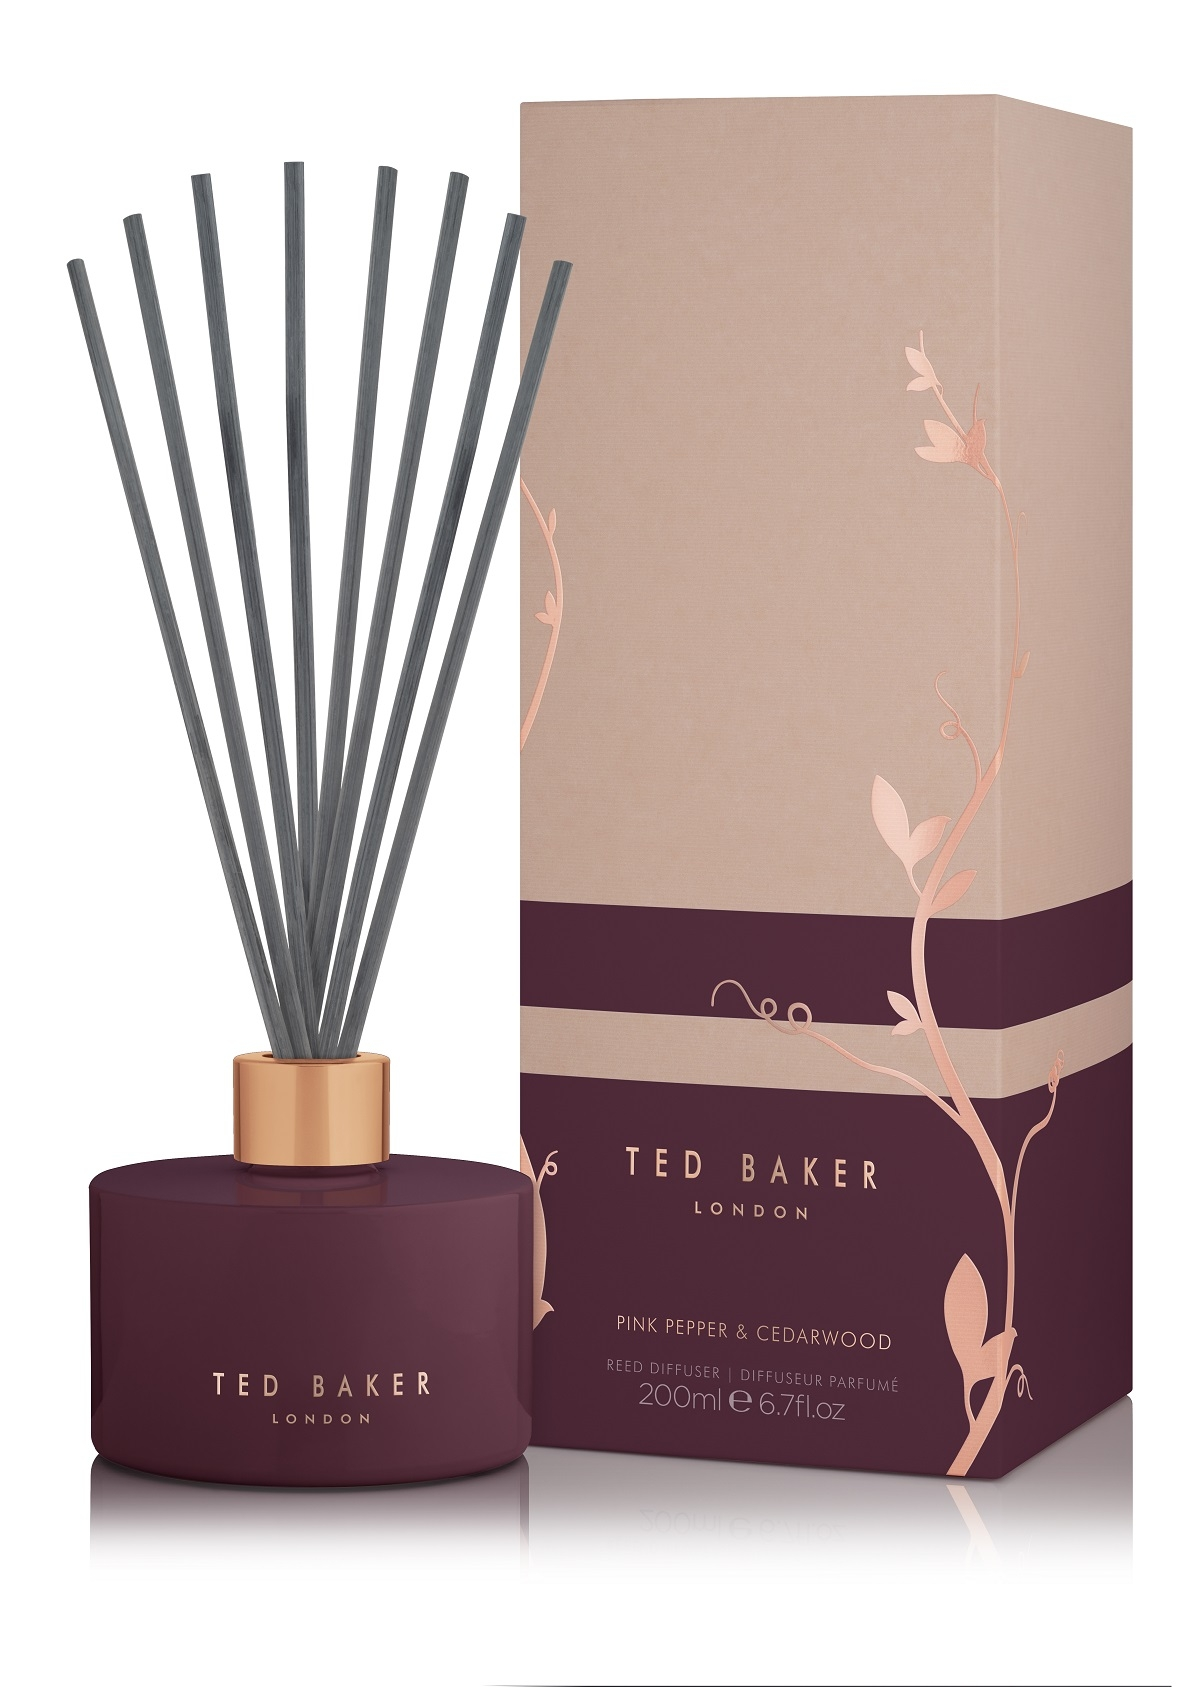 Ted Baker Residence Pink Pepper & Cedarwood Diffuser 200ml